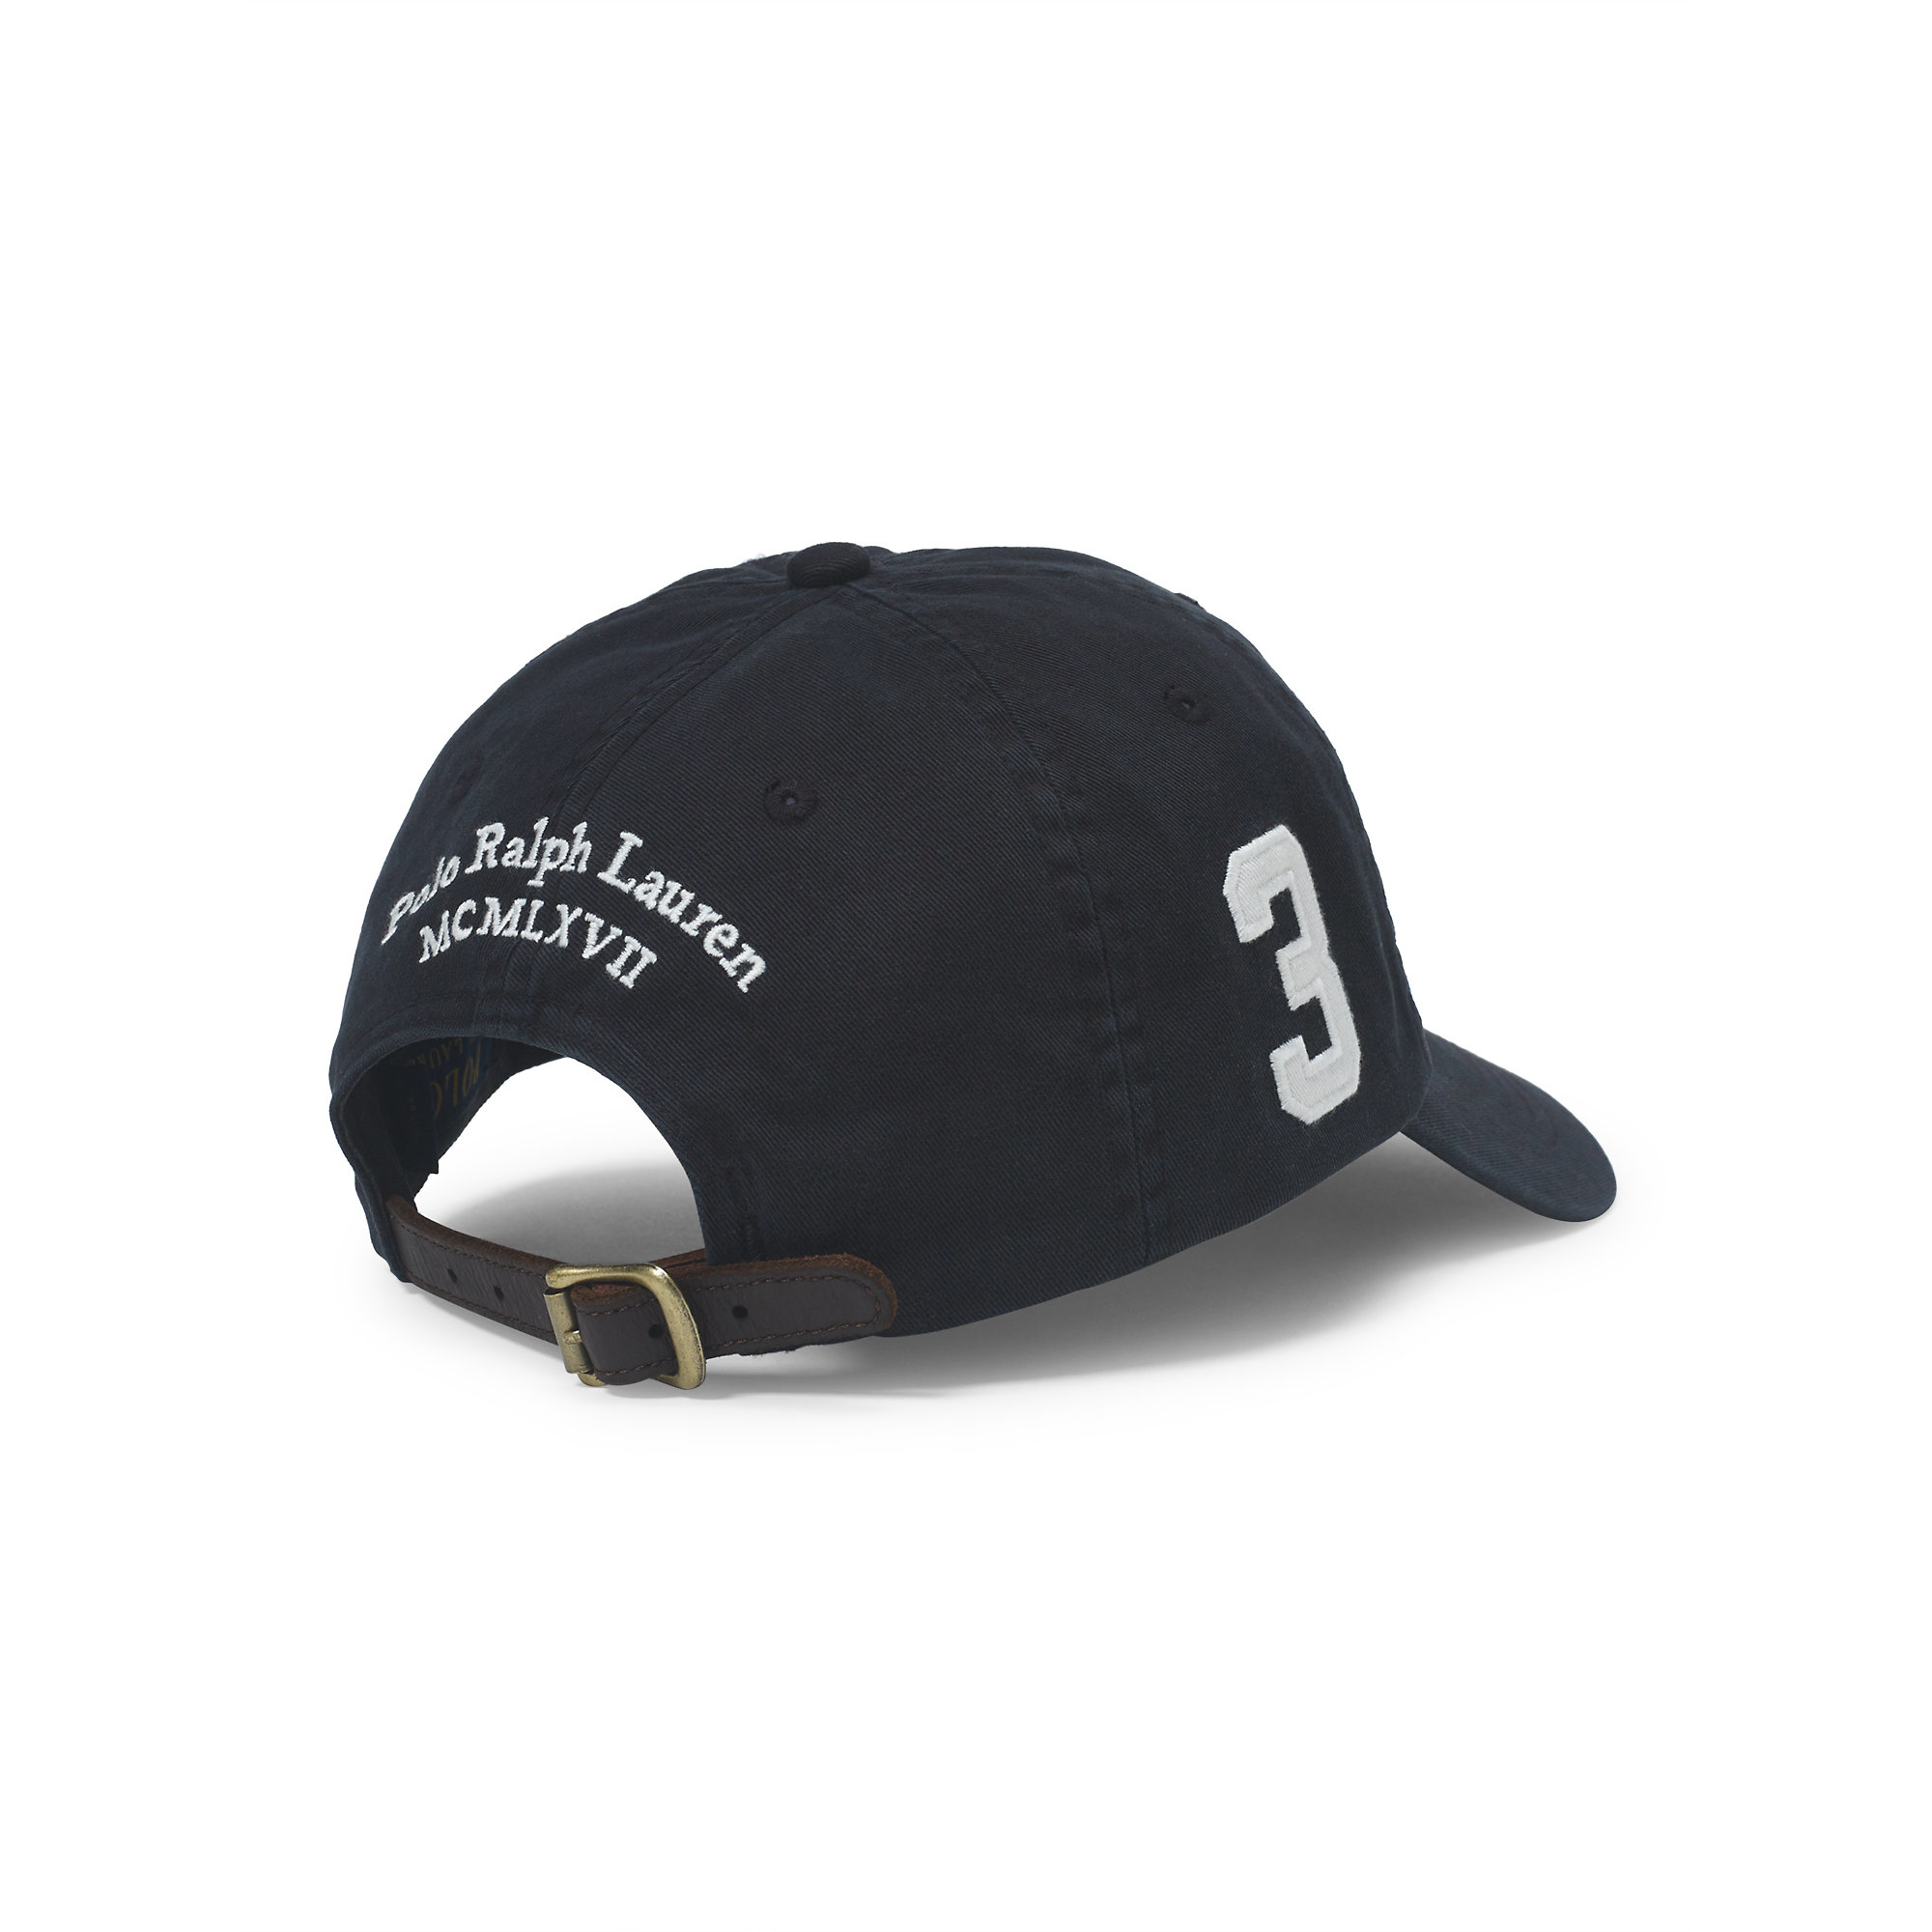 a3a57fafae6 Lyst - Polo Ralph Lauren Big Pony Chino Baseball Cap in Black for Men